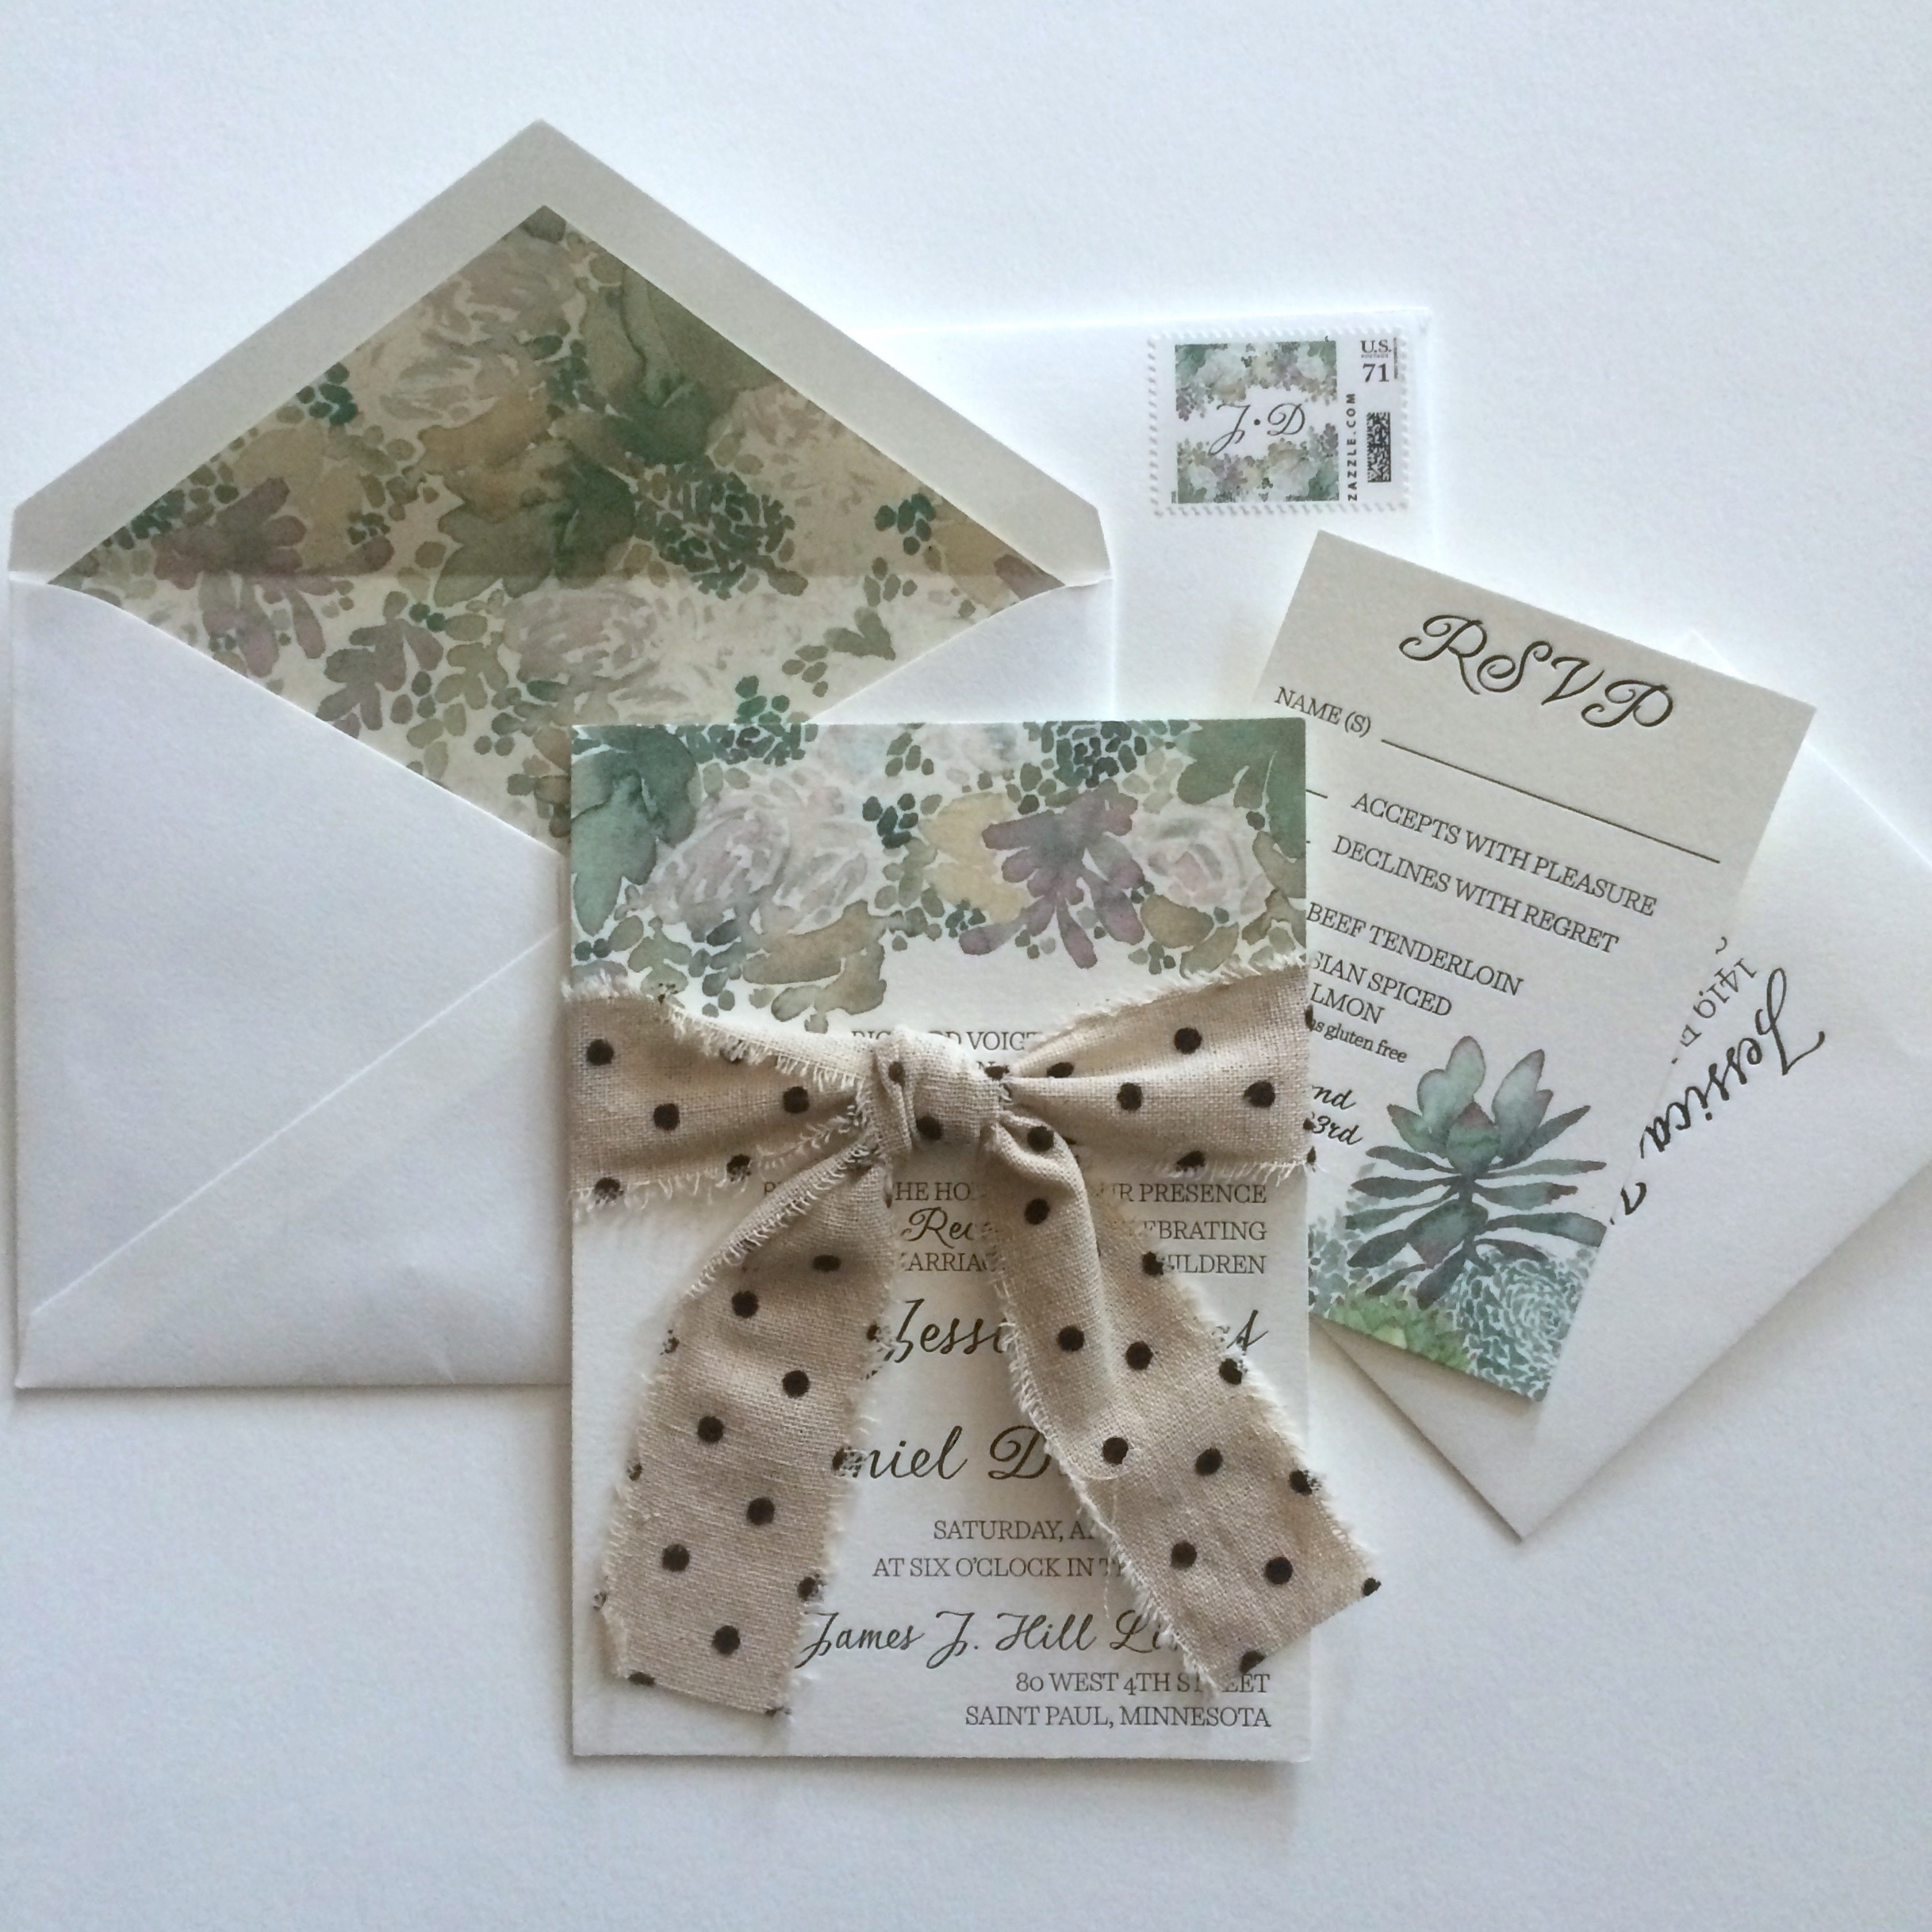 succulent wedding invitations succulent wedding invitations watercolor floral succulents with letterpress text invitation and liner with custom stamp and linen ribbon